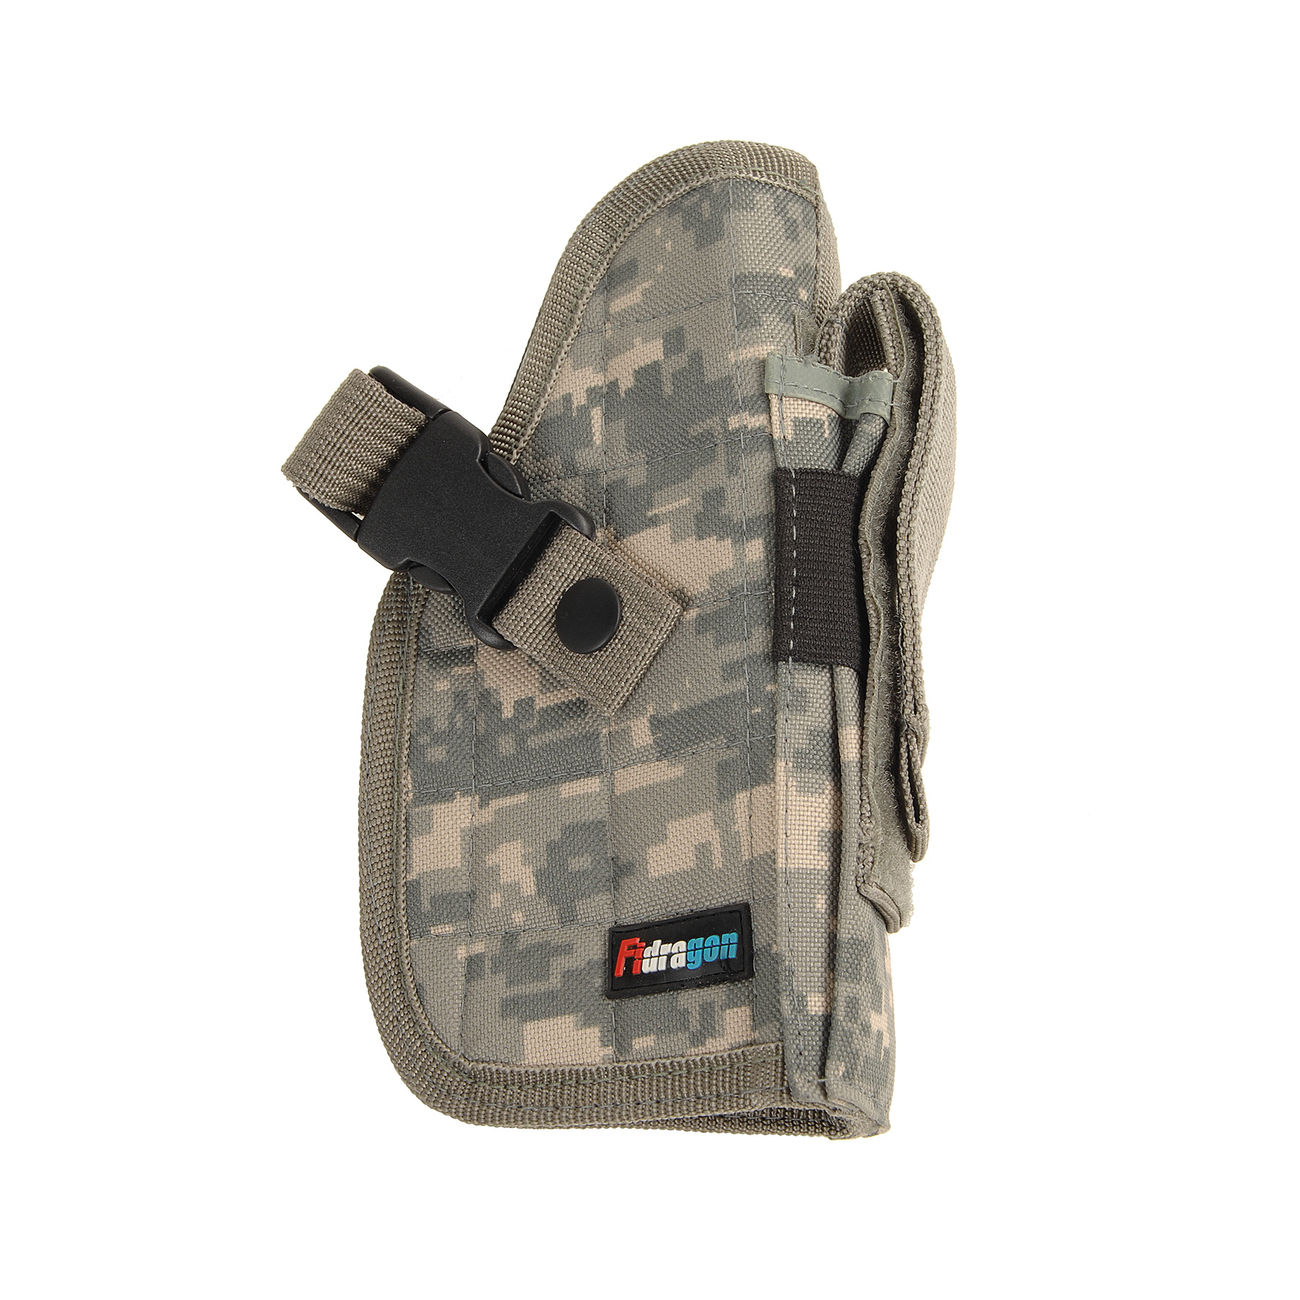 Fidragon Beinholster Tactical Kombi Universal AT-digital 3